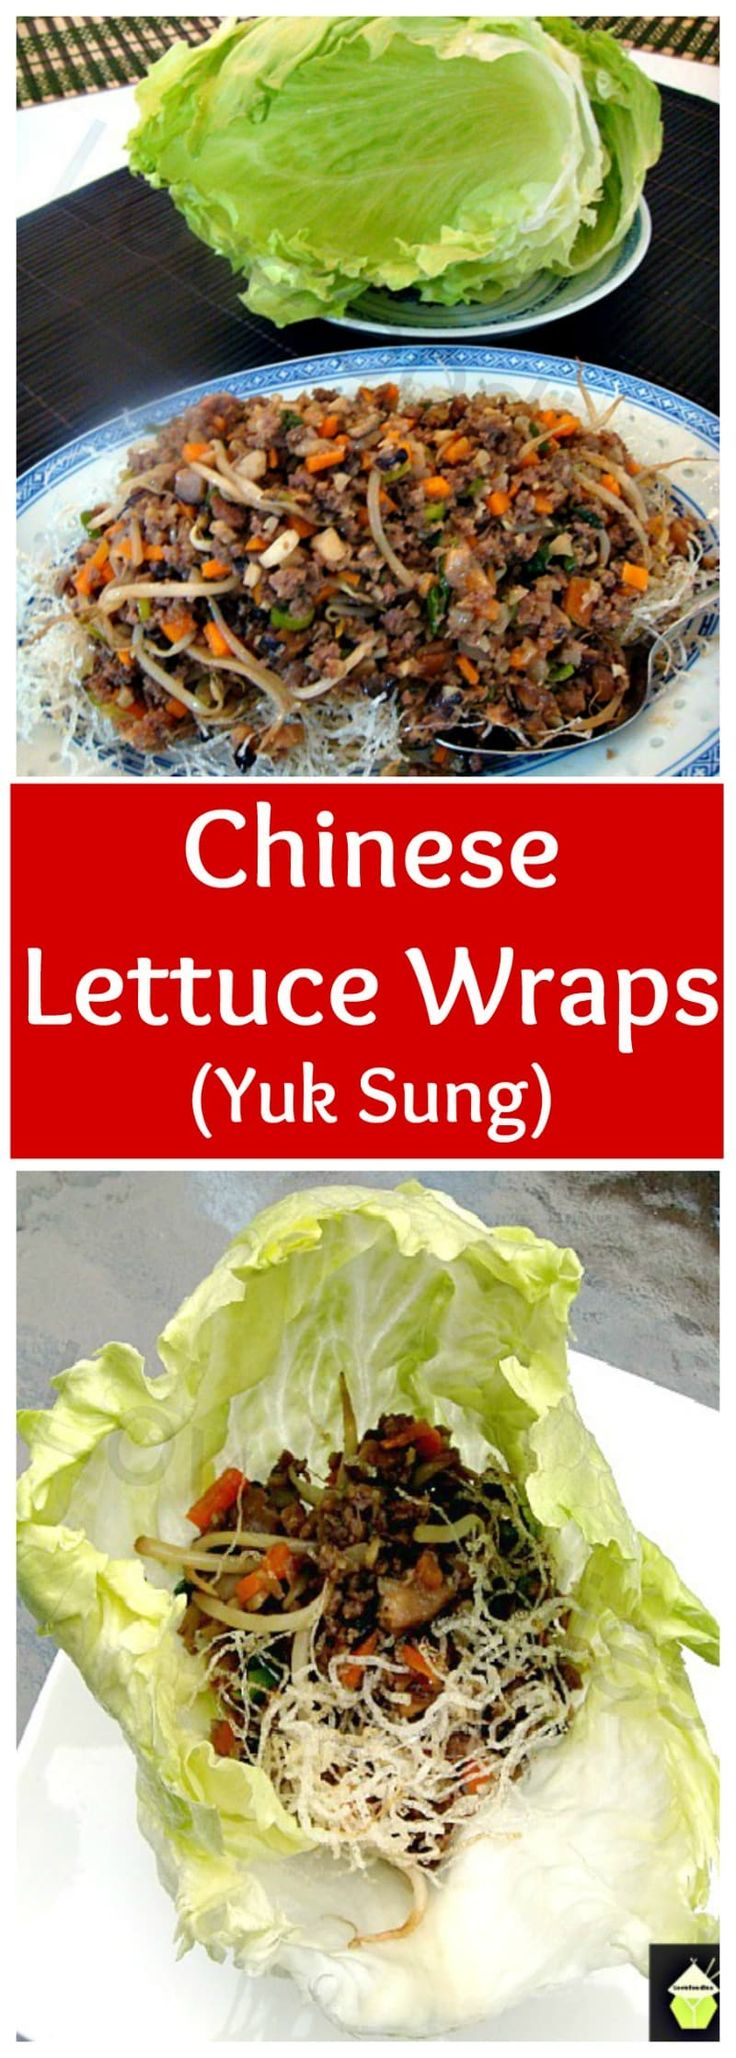 Yuk Sung - Chinese Lettuce Wraps - Inside each lettuce leaf is a little pile of treasures! A great dish to serve as a starter or at parties via @lovefoodies